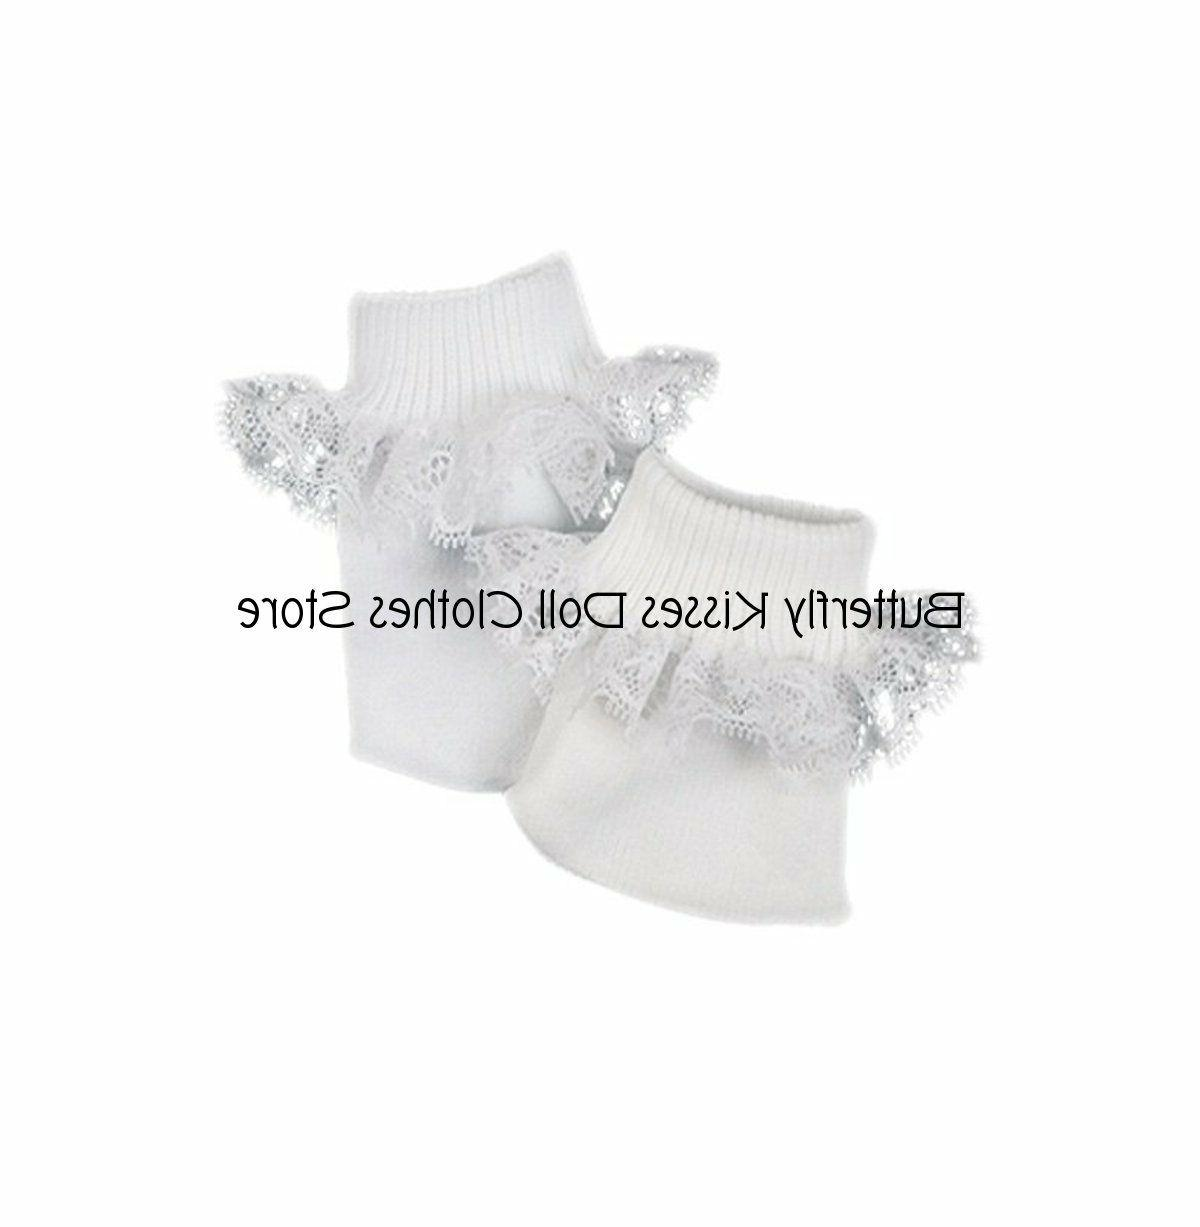 White Lace Trim Socks 18 in Fits